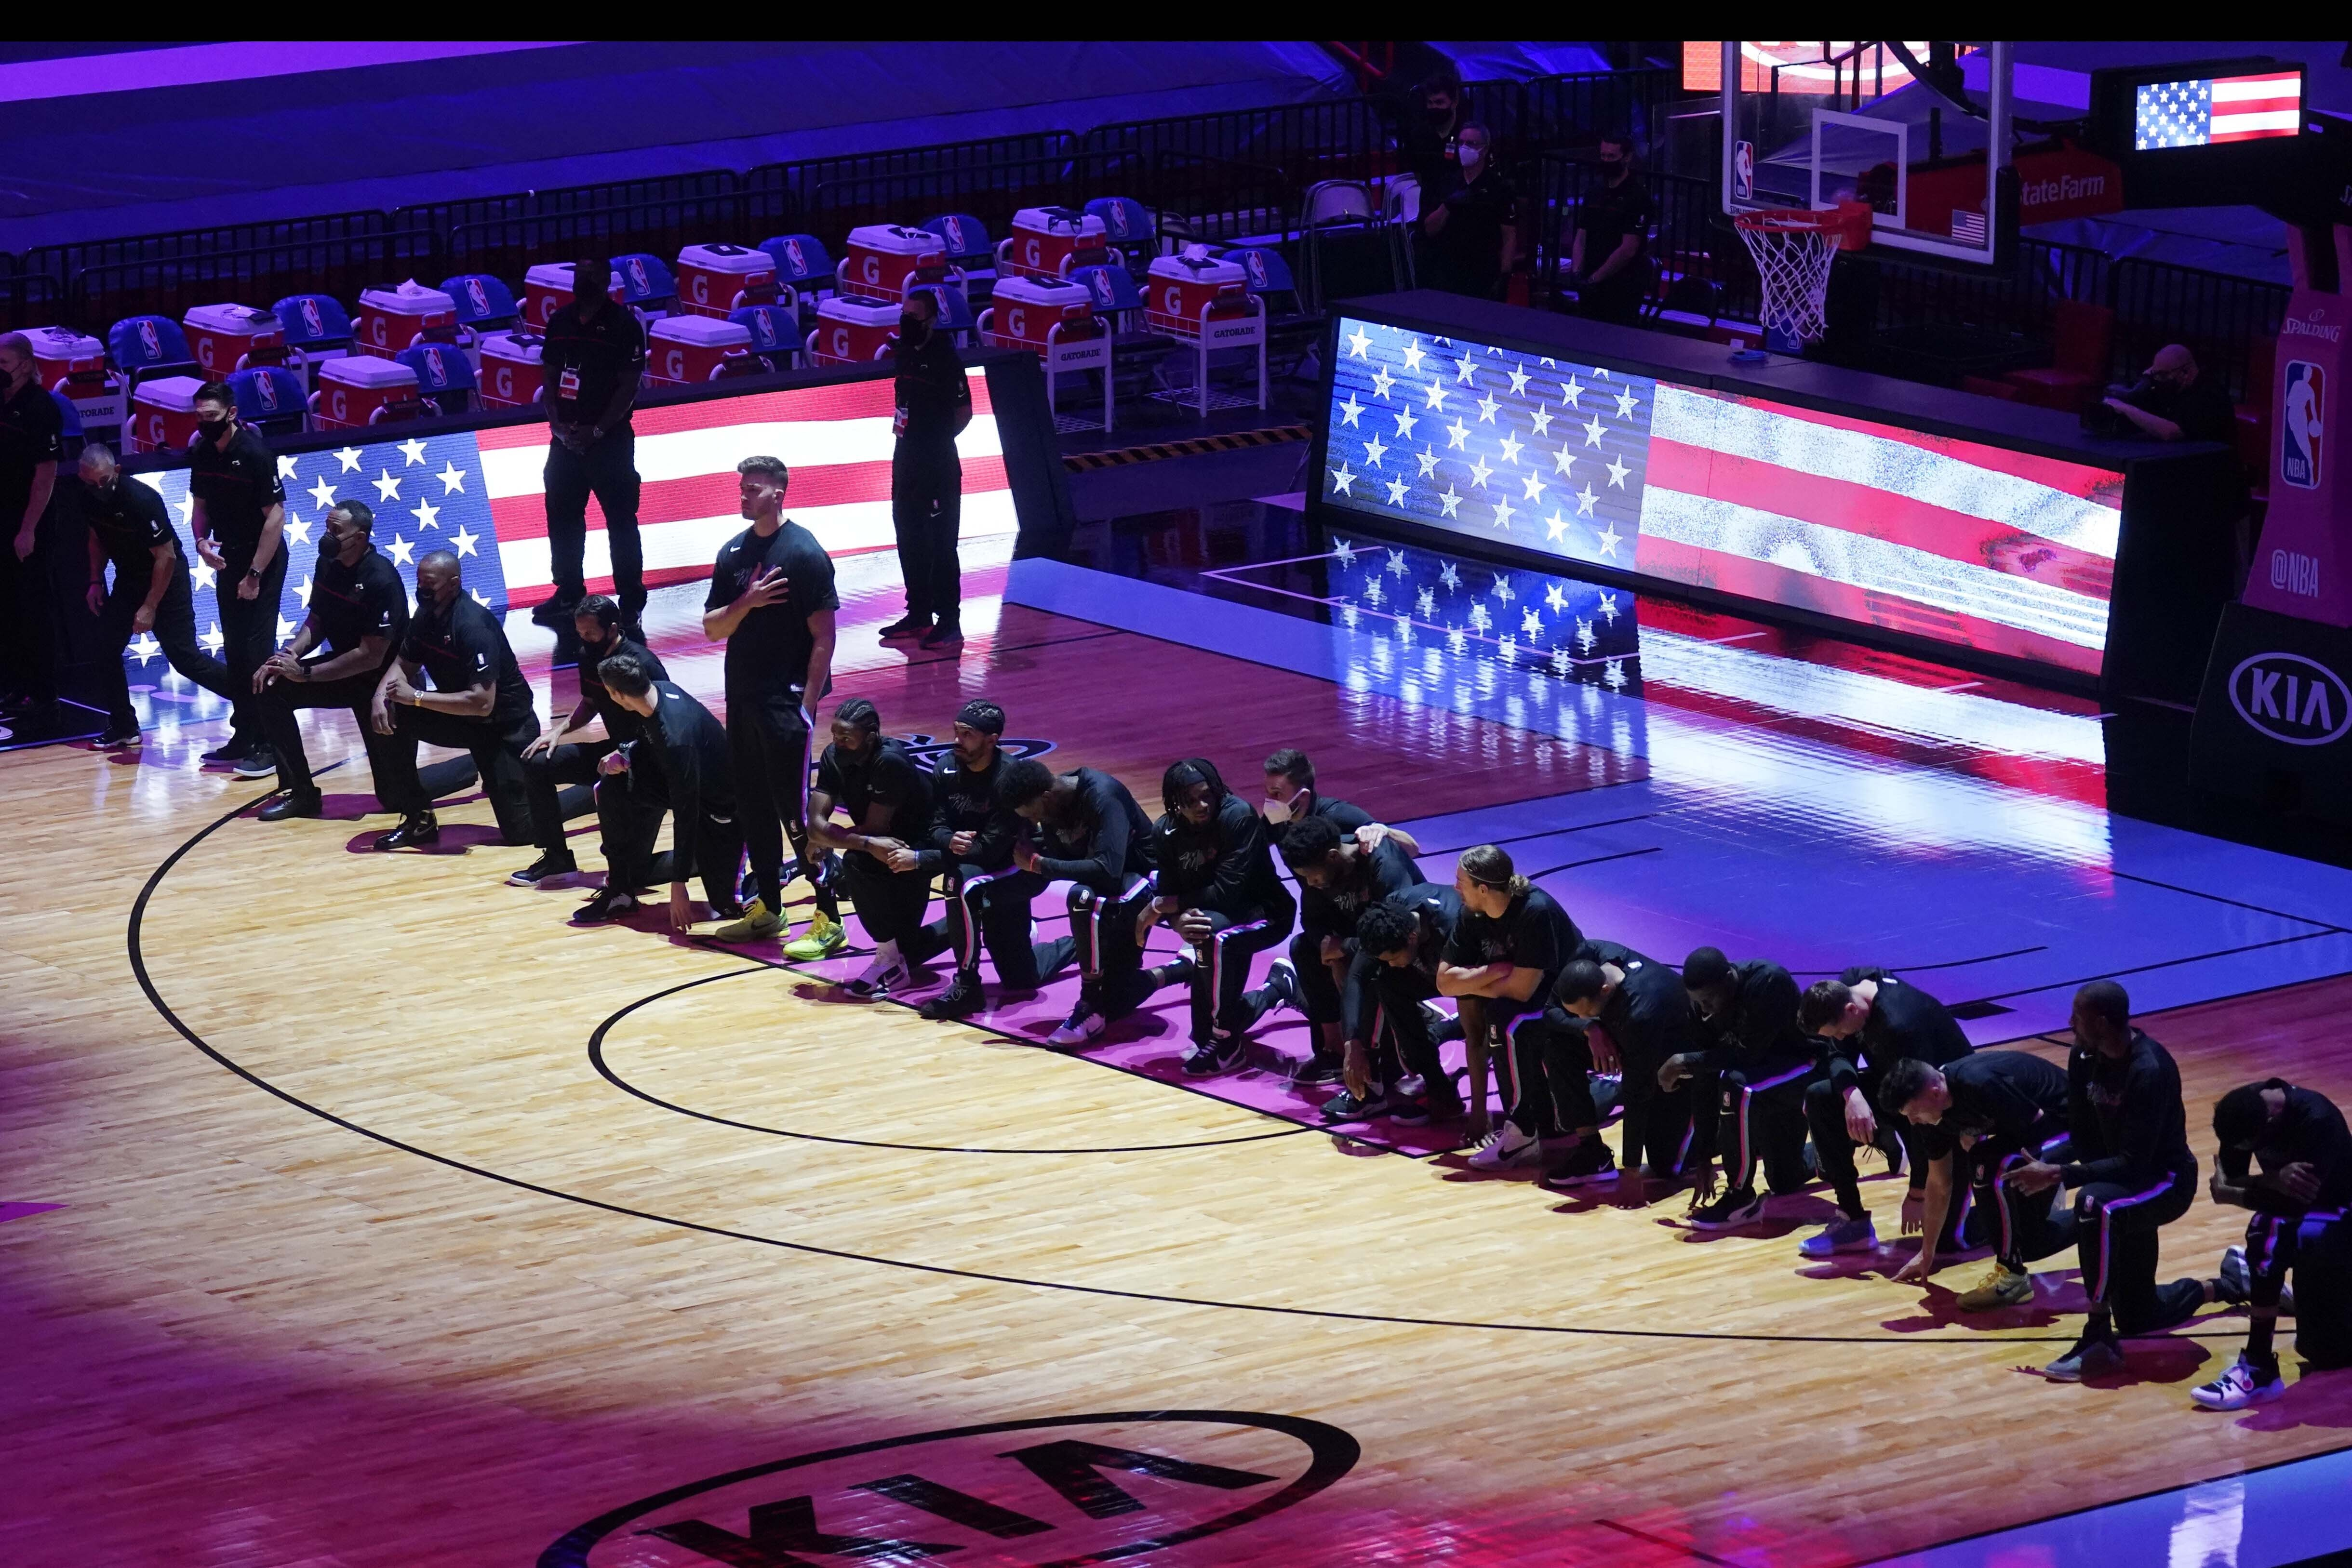 The Boston Celtics team kneels during the playing of the National Anthem before the first half of an NBA basketball game against the Miami Heat, Wednesday, Jan. 6, 2021, in Miami. Photo: AP